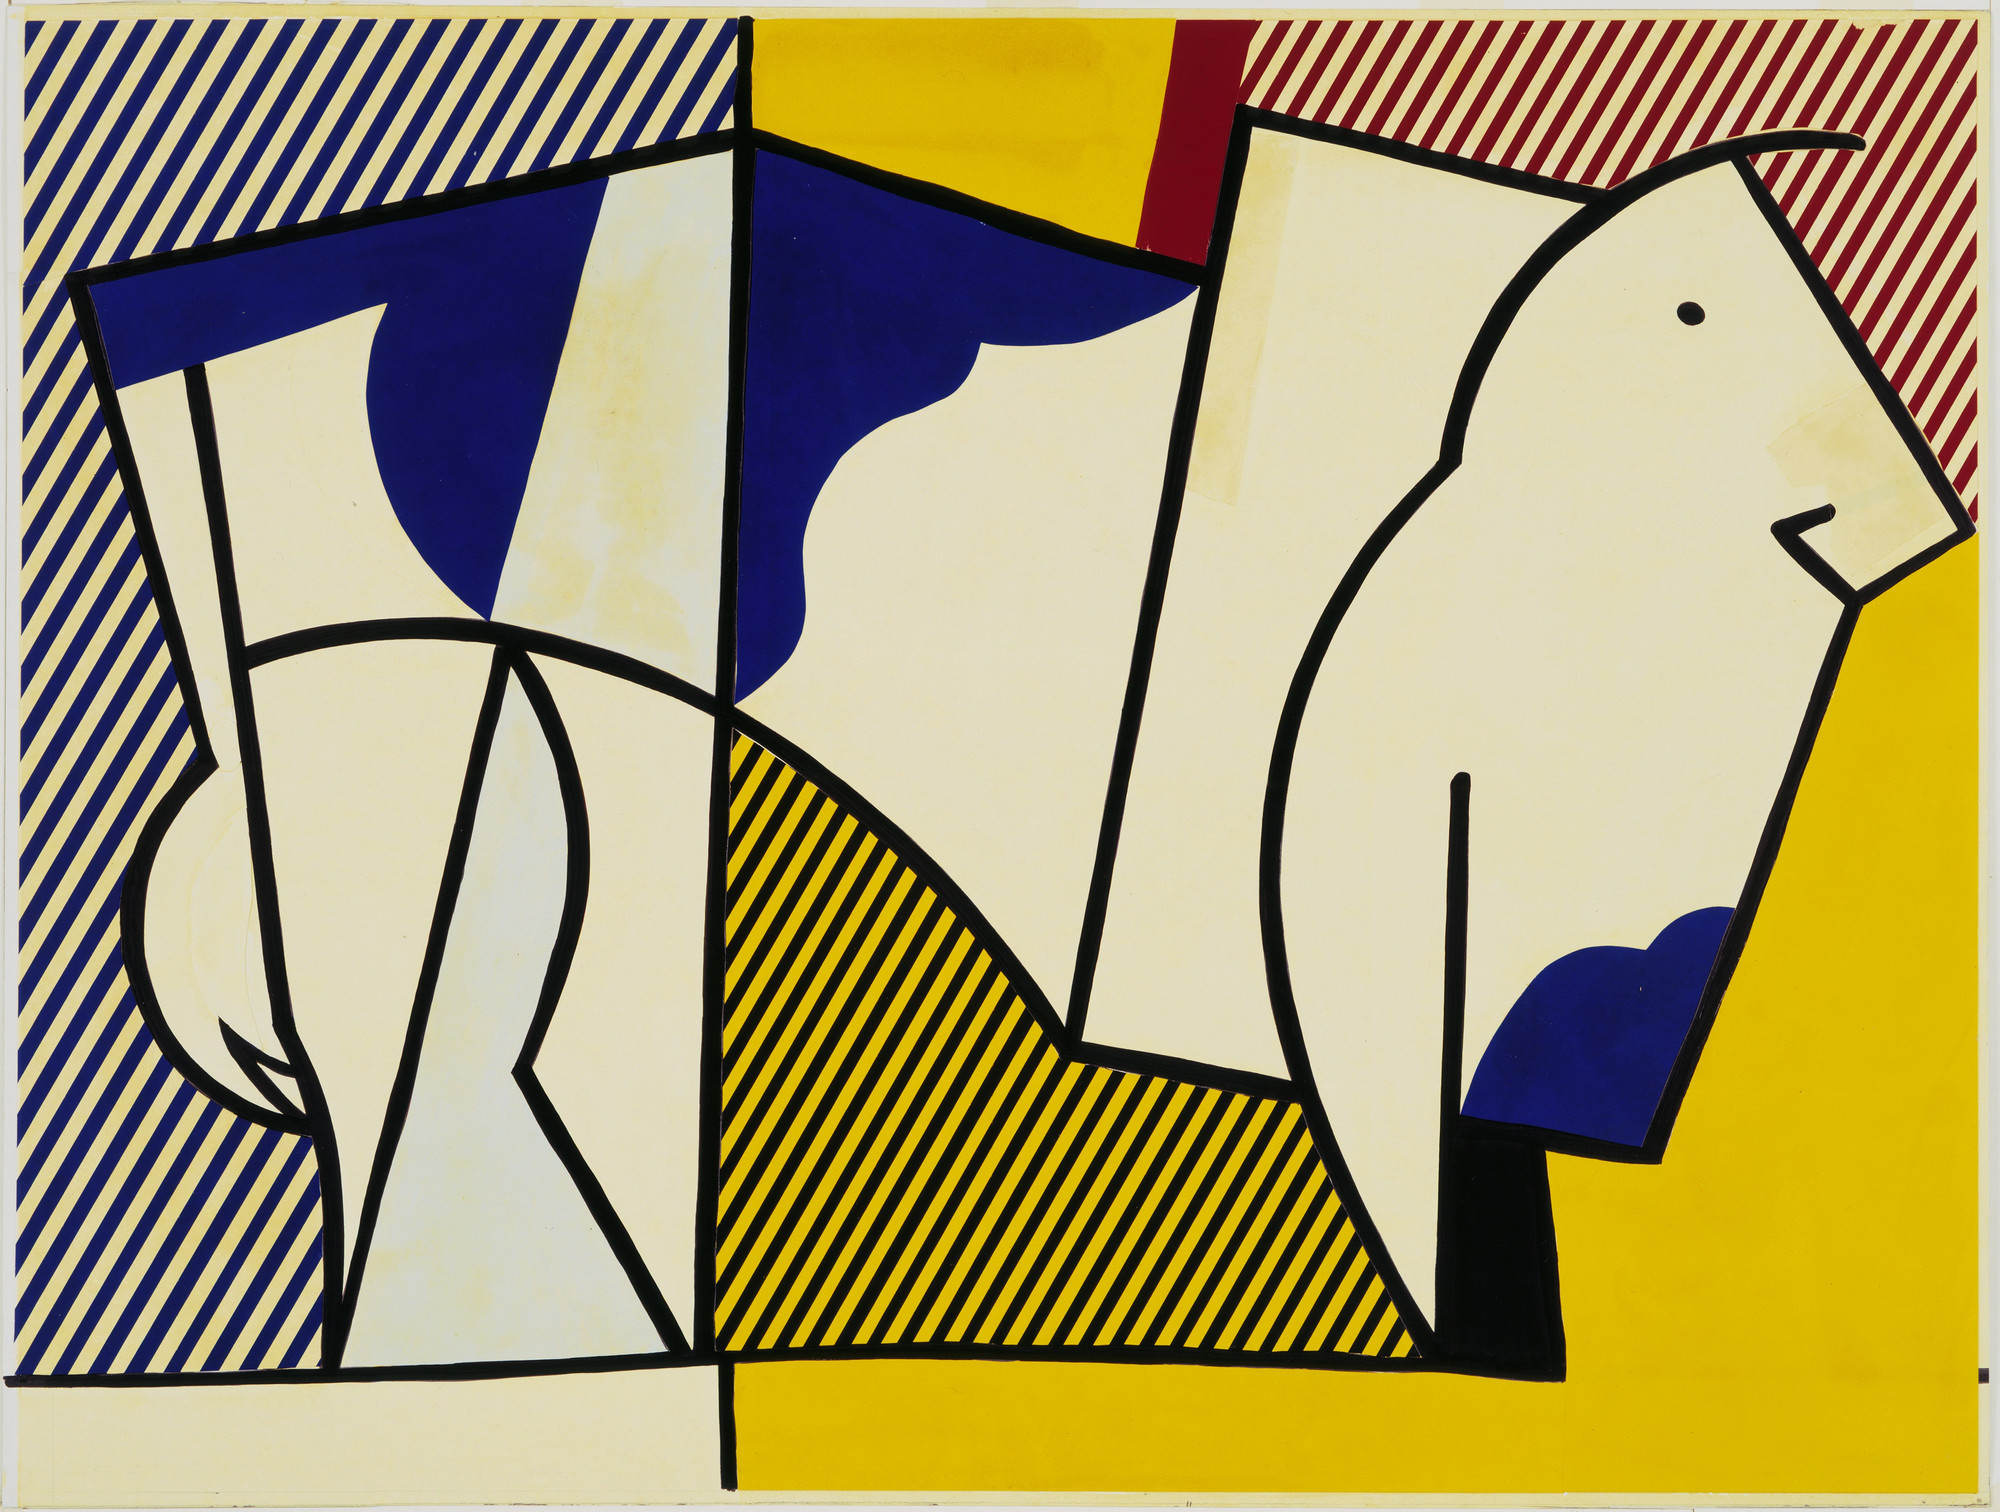 Roy Lichtenstein. Study for Bull III. 1973